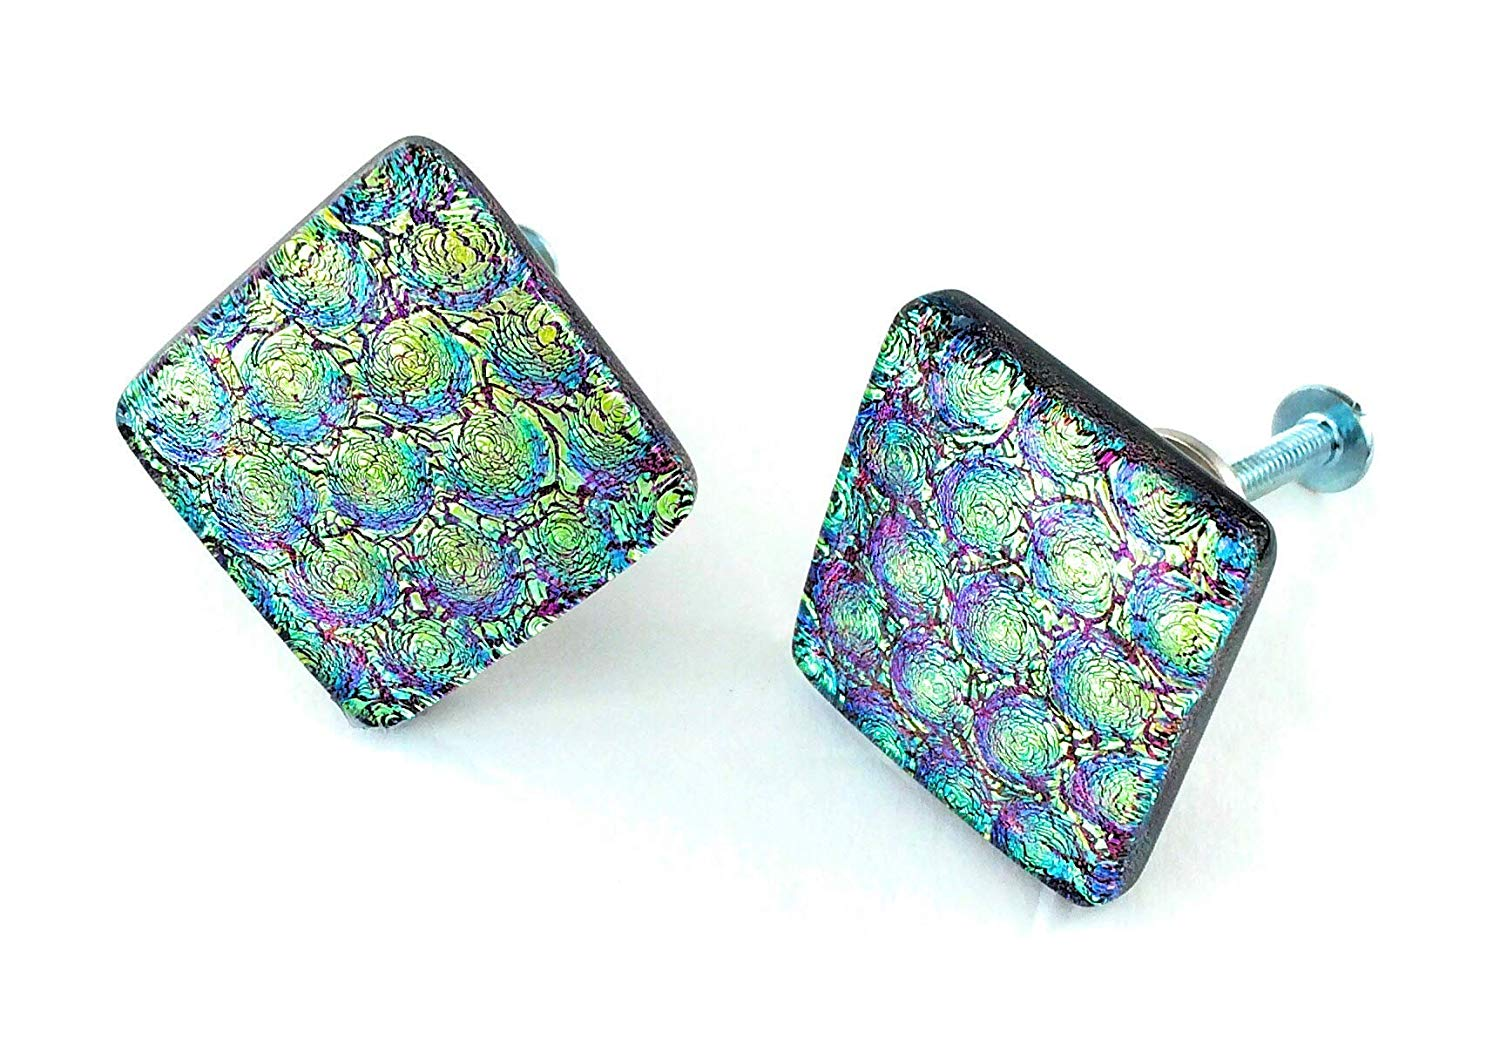 Set of Two Diamond shaped Fused Dichroic Glass Cabinet Door Knobs - Gold Teal and Purple Dichroic Glass - Custom Cabinet Knobs - Handmade Hardware